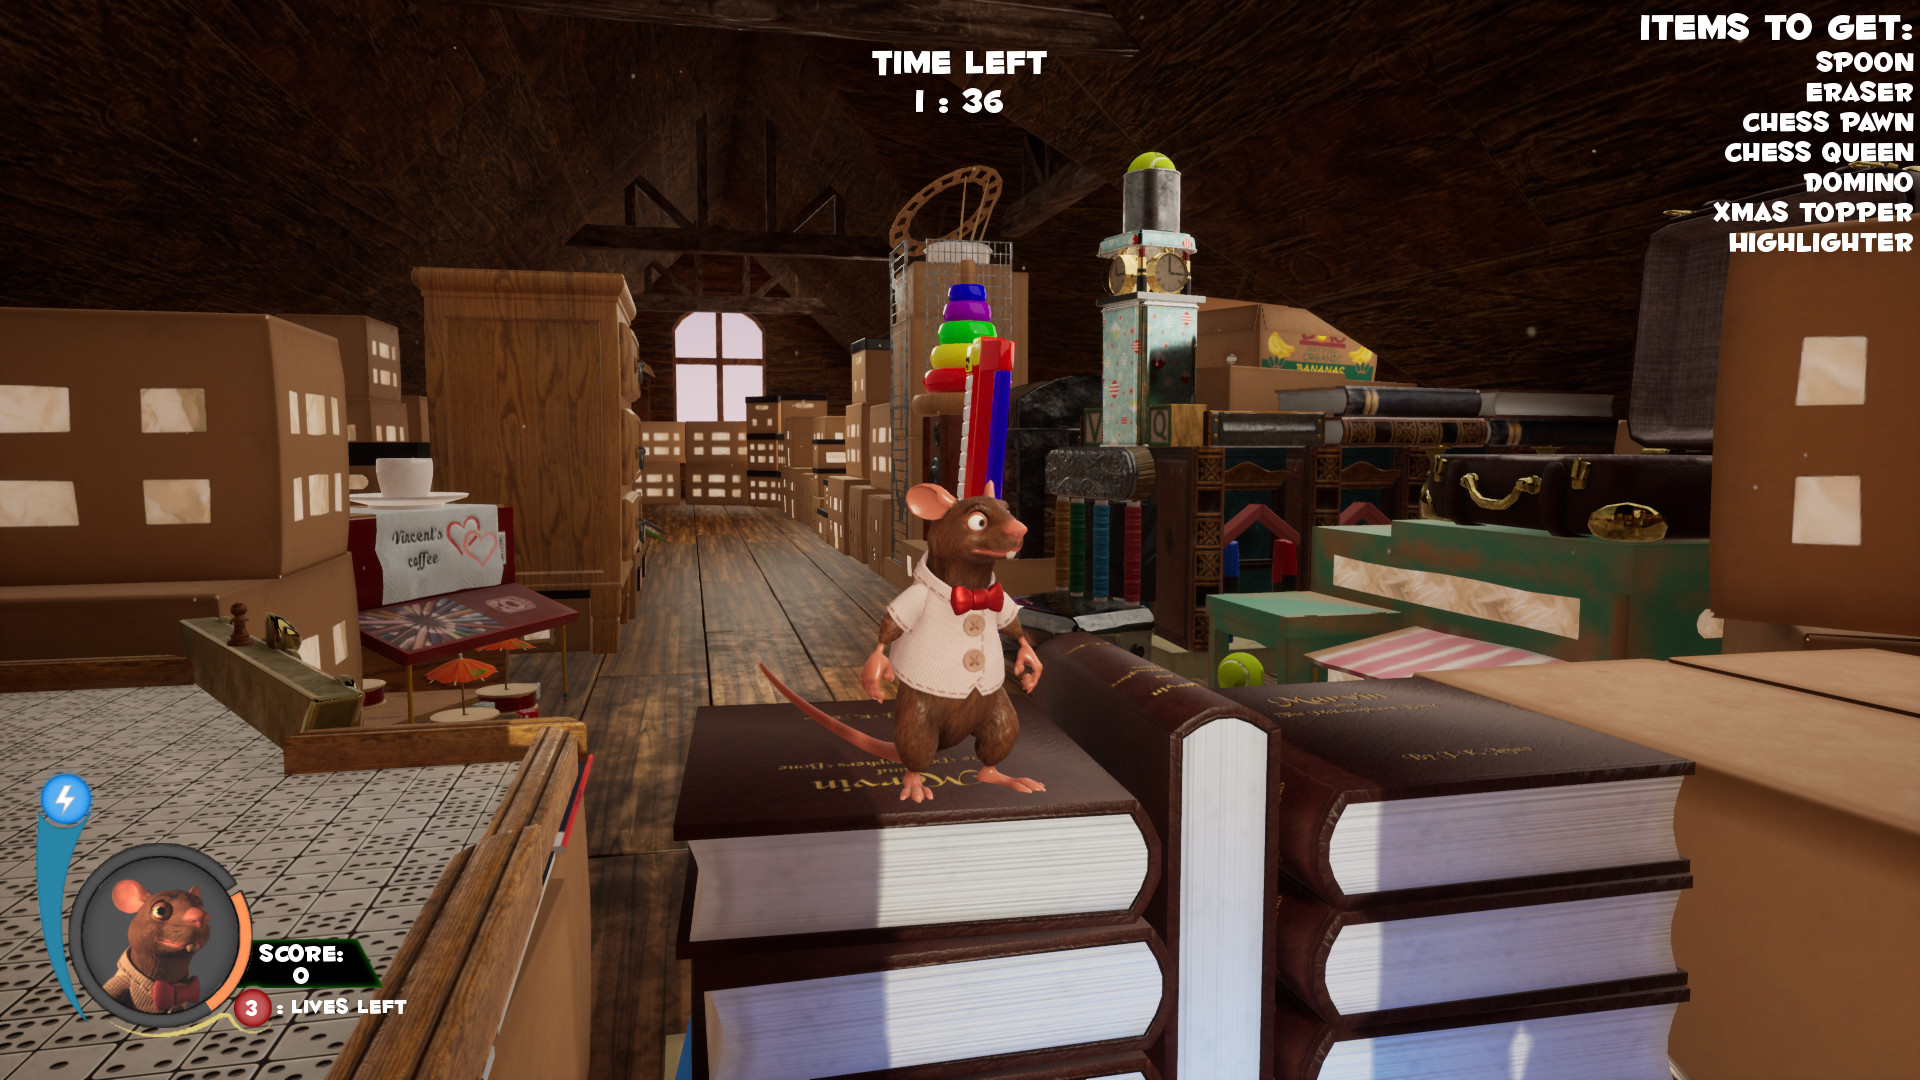 In game screenshot - All art was created based off of assets from the following artists: Brent Kirby, Mathew Kishan, Lyon Chan, James Manlangit, Sara Bunn, Vincent Qiu, Jasmine Low, Chantelle Connelly, Layla Viscu, and Joshua Lay.